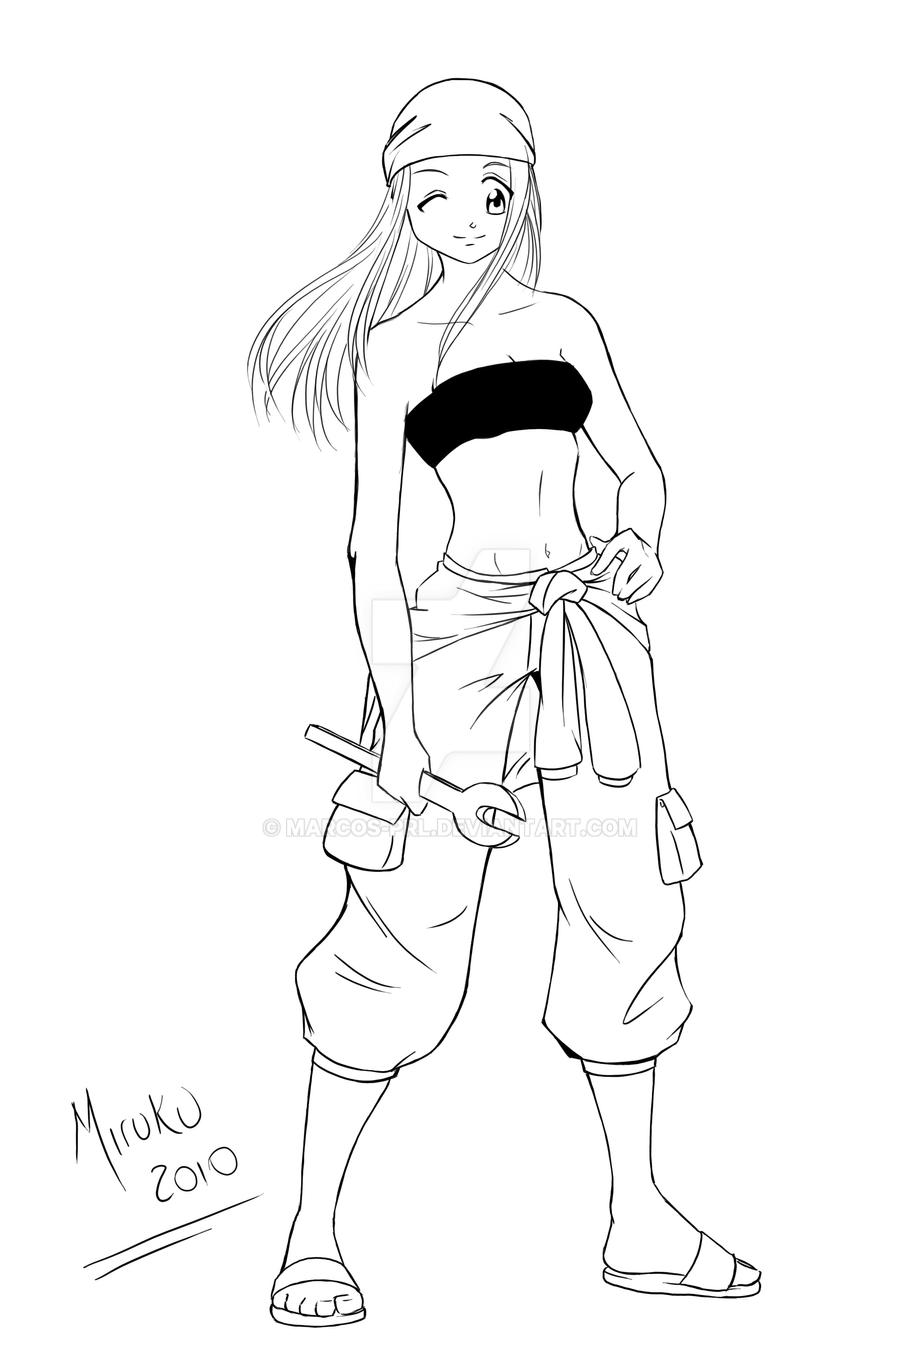 Winry Rockbell - FMA by marcos-prl